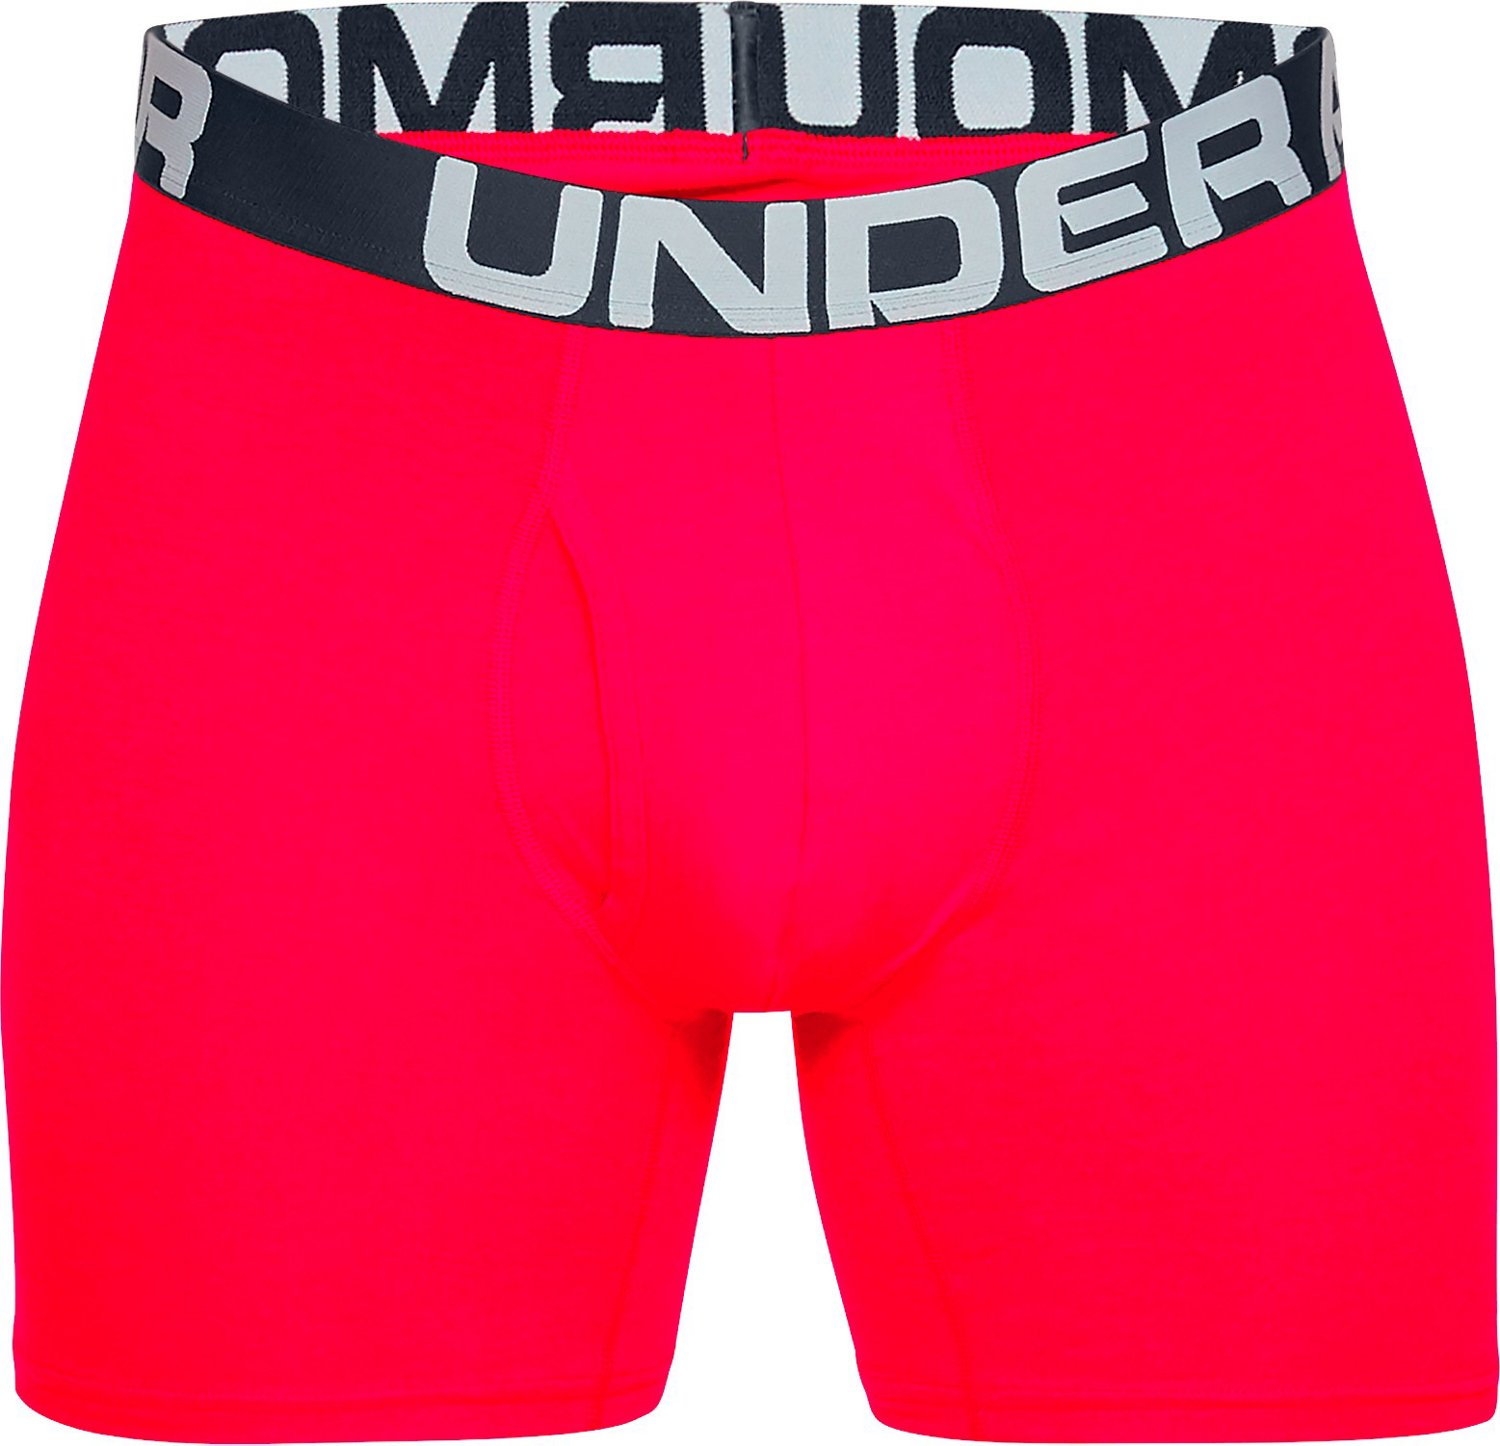 08c6e9bdb97fa Display product reviews for Under Armour Men's Charged Cotton Boxerjock Boxer  Briefs 3-Pack